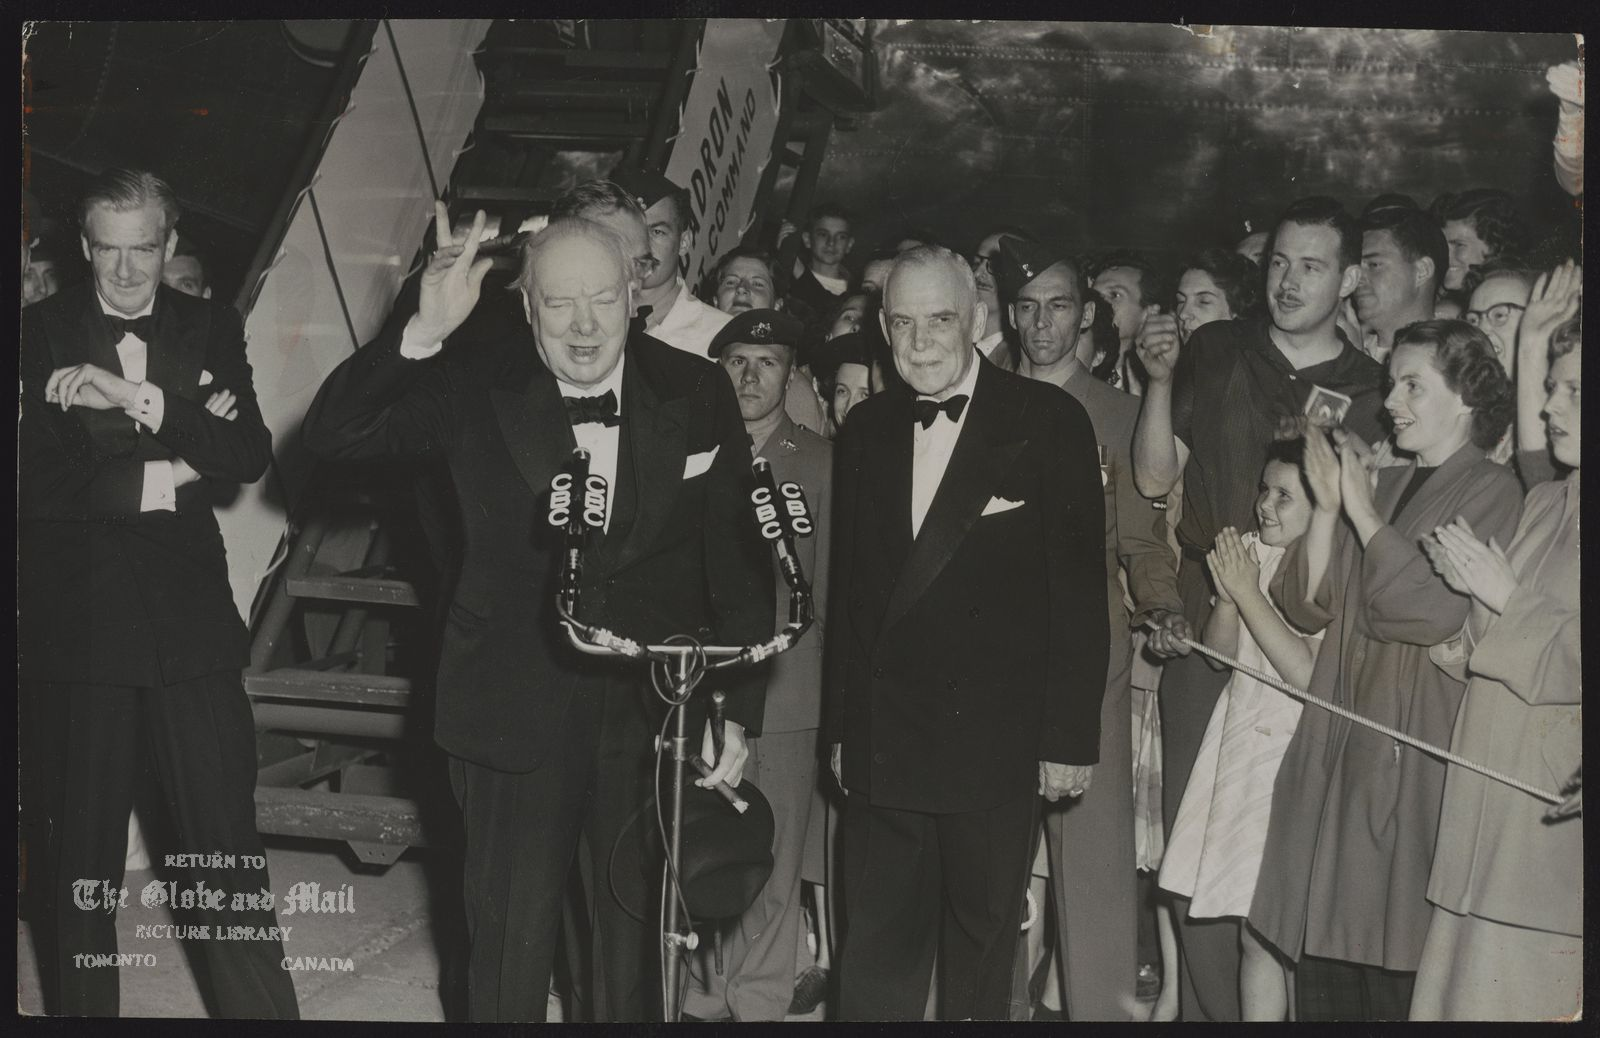 Winston CHURCHILL In Ottawa Farewell to visiting British statesman brought large crowds to airport at Ottawa Wednesday night when Prime Minister Churchill spoke briefly, gave his famous